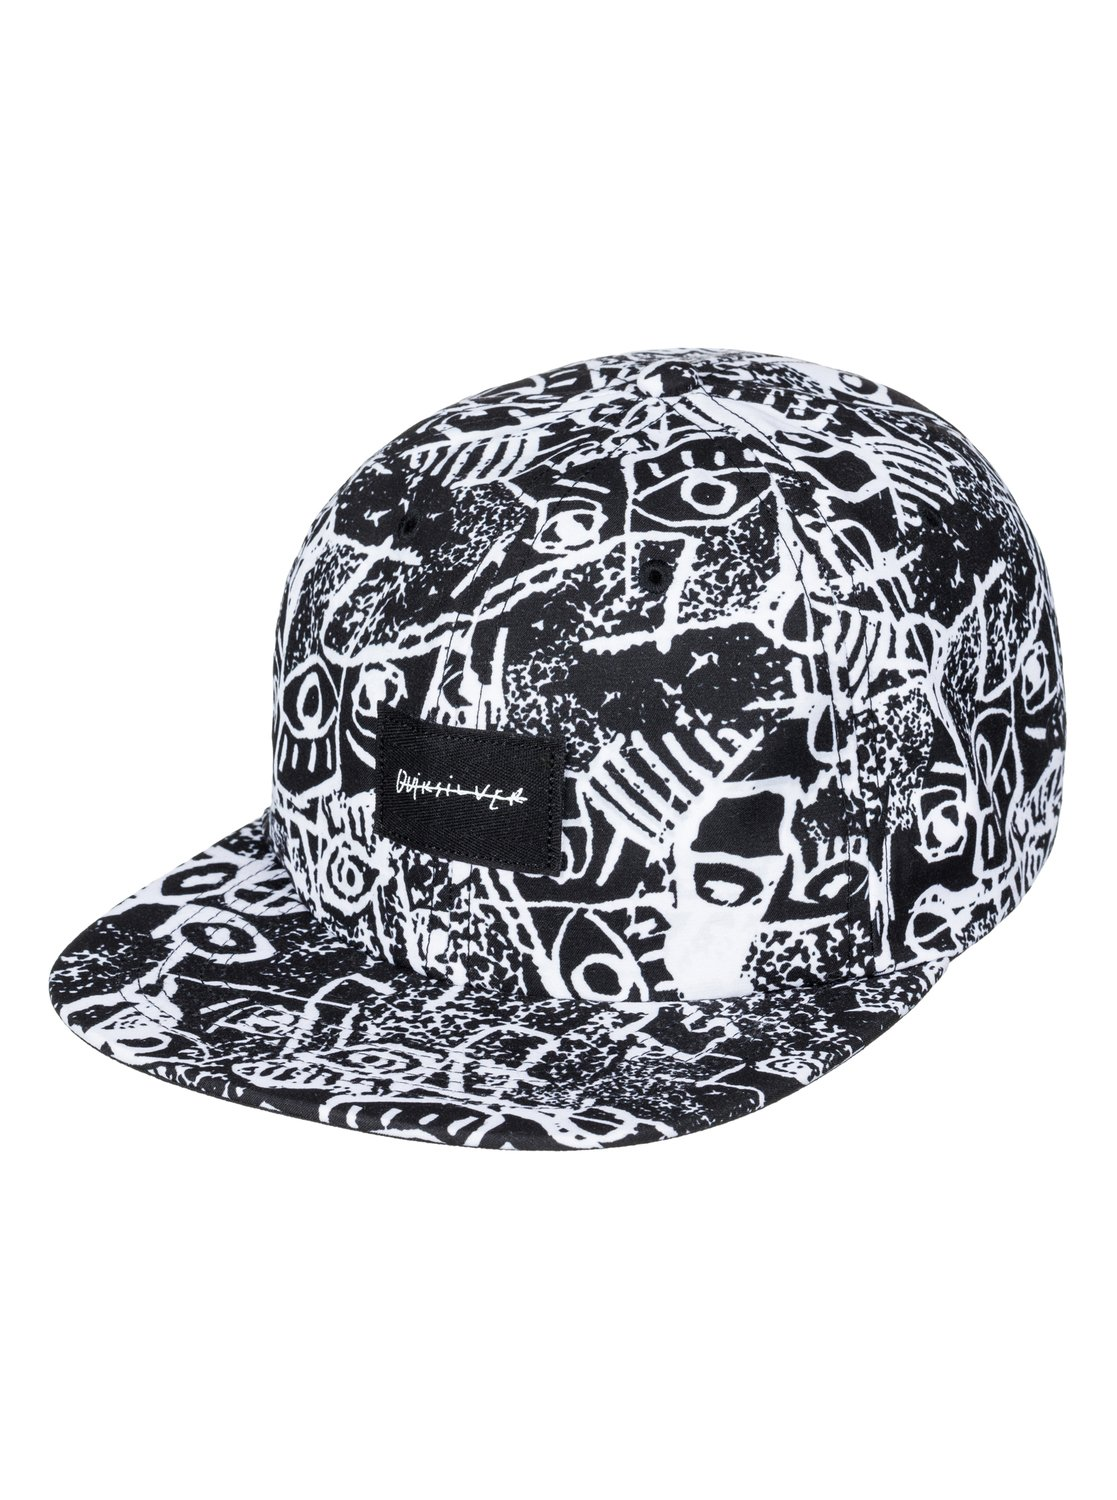 Nighty - Casquette snapback pour Homme - Quiksilver